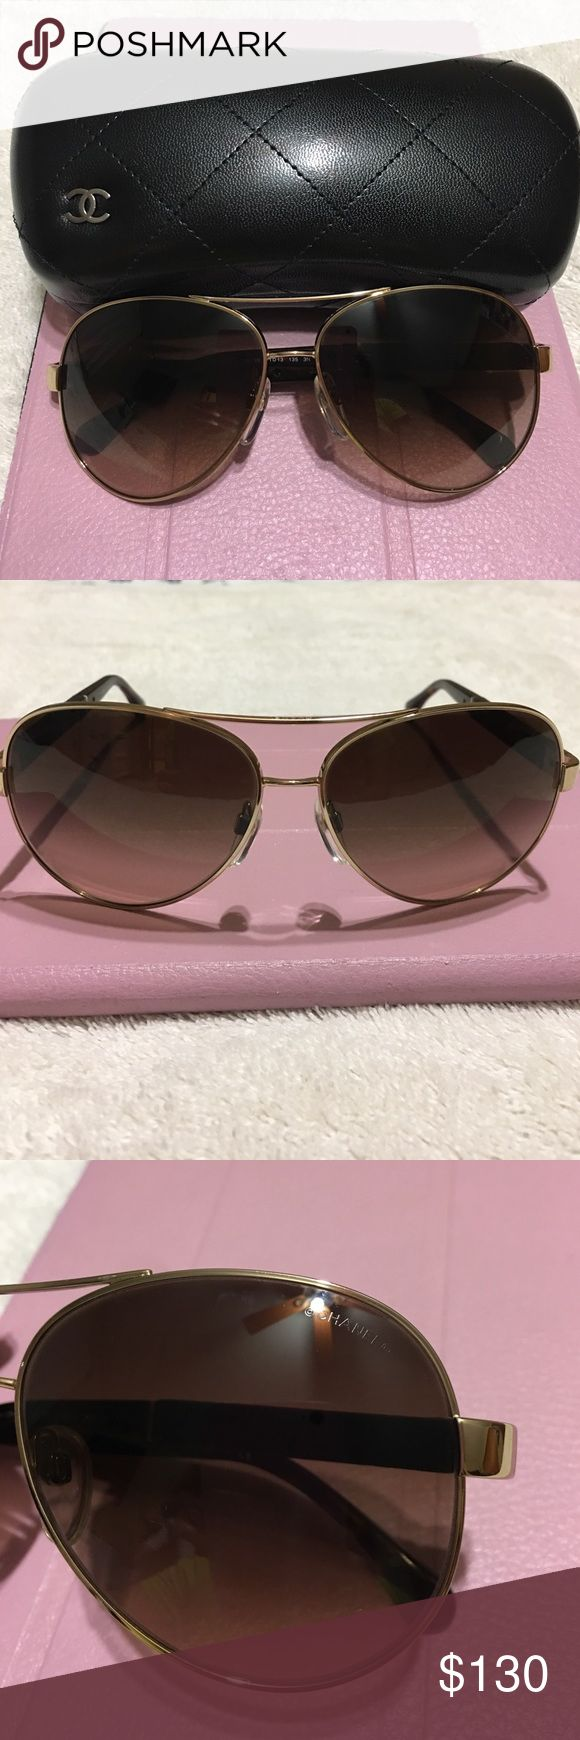 Authentic Chanel Aviators Sunglasses 4195Q 395/3B 100% Authentic Chanel Sunglasses excellent condition, just some minor scratches on lens and frame but not noticeable , comes with original case. Please see pictures carefully for details, please serious buyer, item sold as is and no return, thank you! CHANEL Accessories Sunglasses